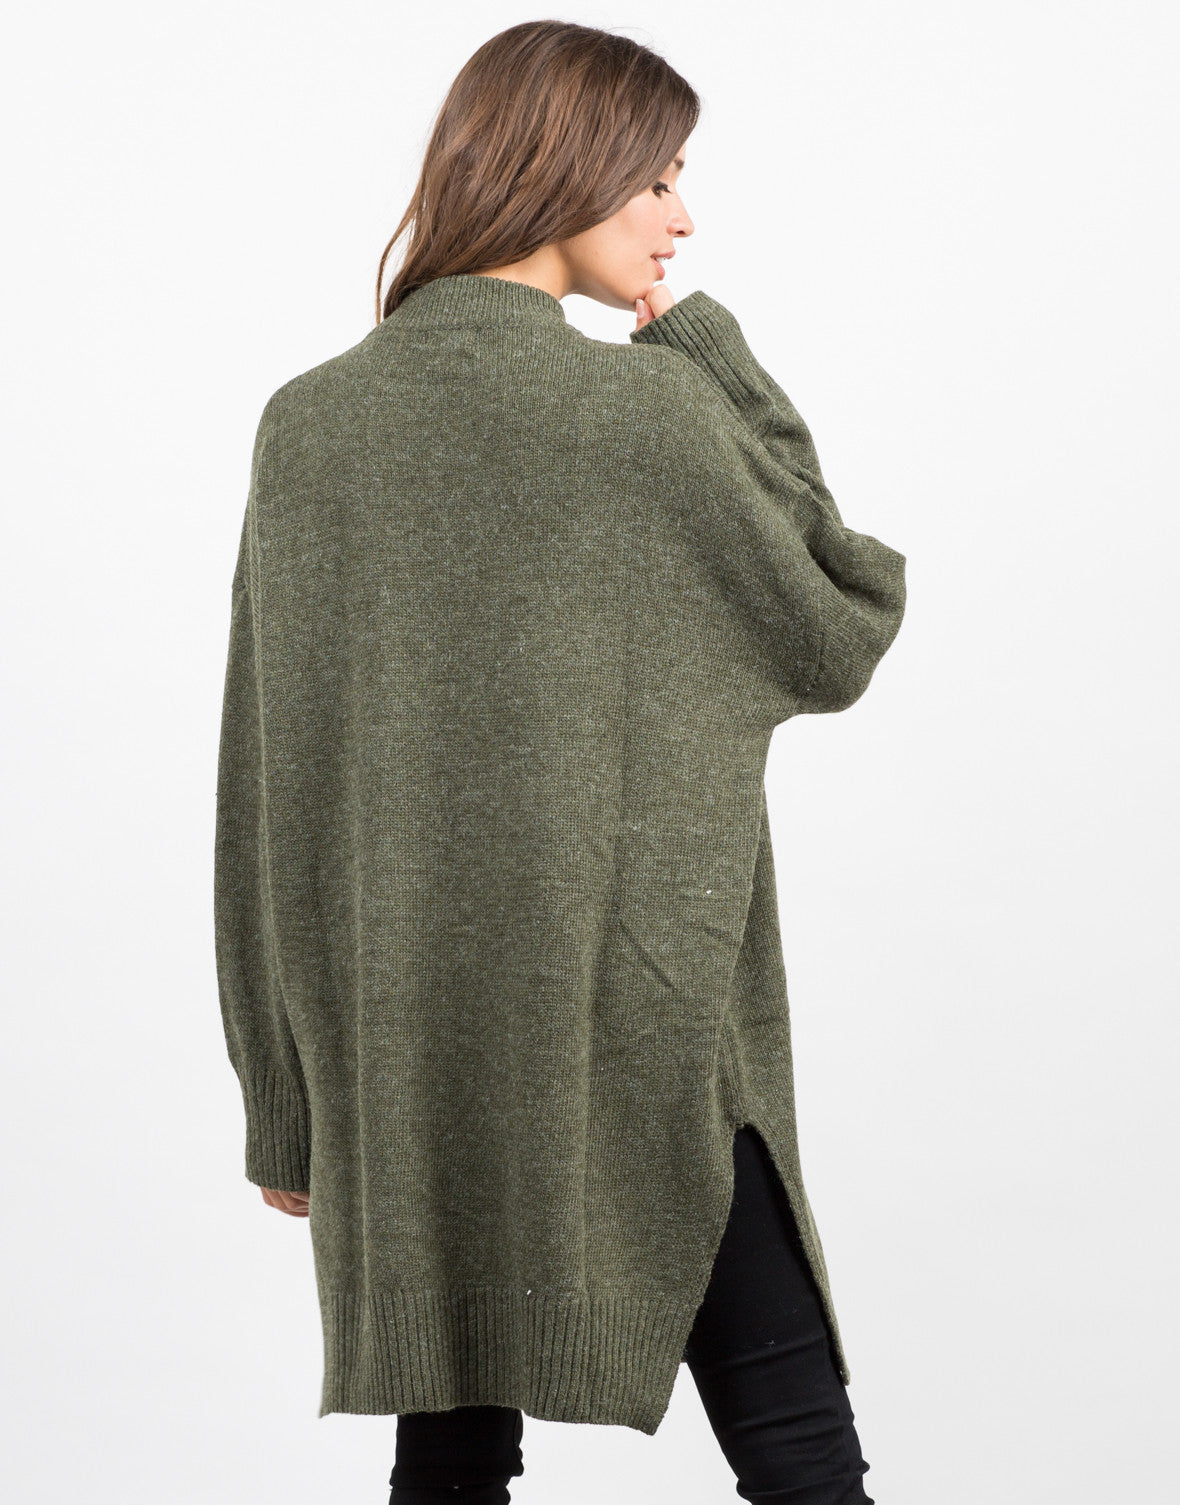 Back View of Oversized Long Knit Sweater